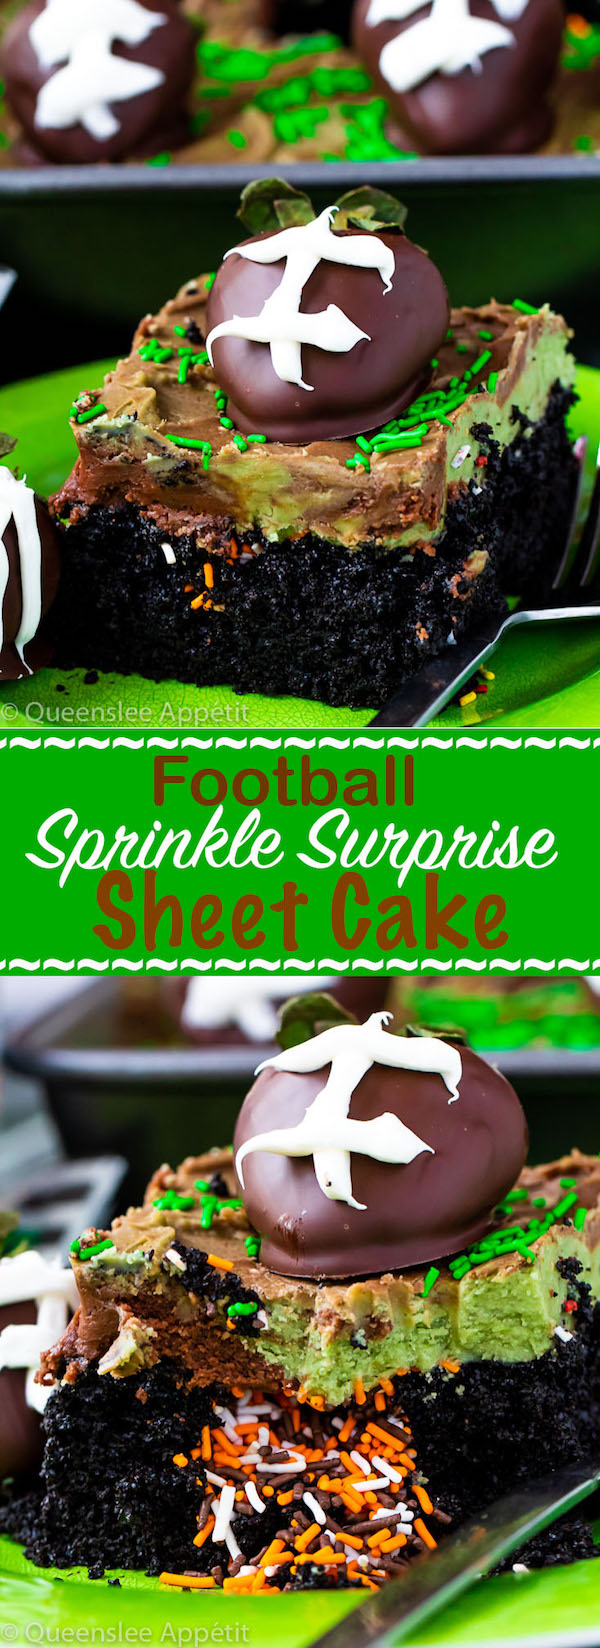 Football Surprise Sprinkle Sheet Cake